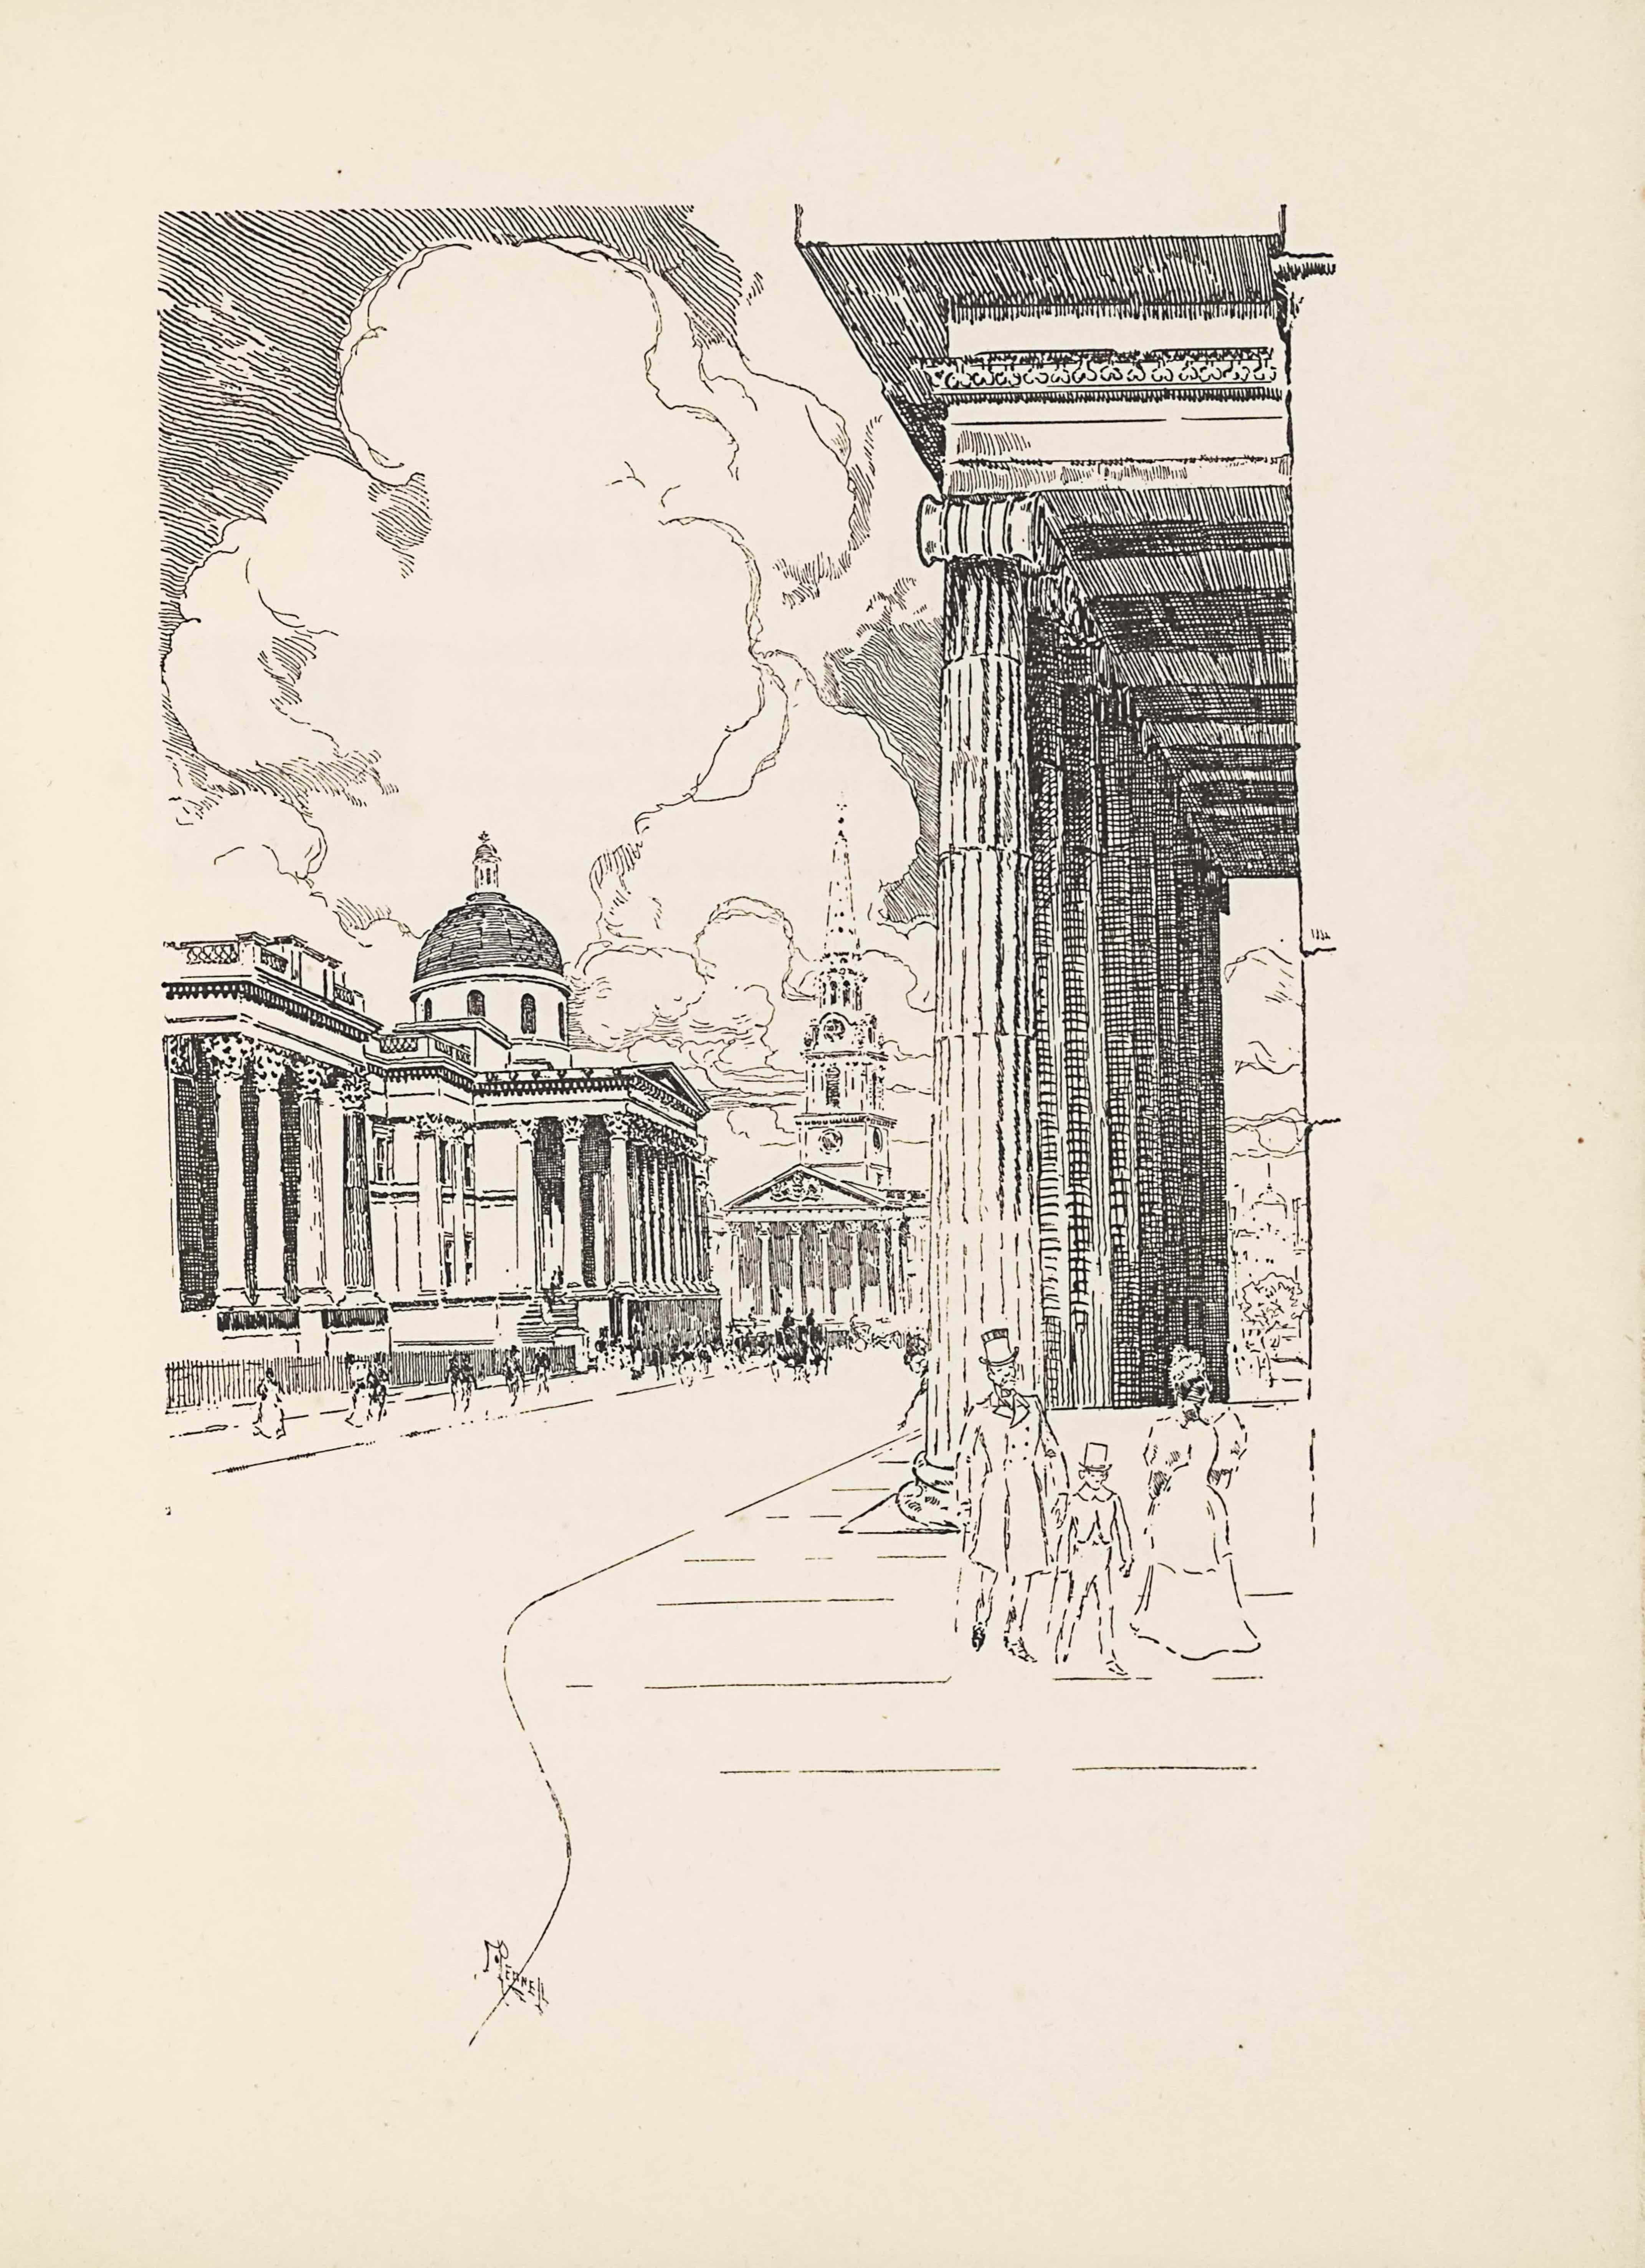 The line block image is in portrait orientation. The viewer stands at street level, looking from the sidewalk into the city of London toward the Dome of St Paul's Cathedral. The foreground is cut into two sections: the road is pictured on the left third, and the sidewalk on the right two-thirds. The sidewalk has horizontal lines every few feet. A third of the way up the page, on the right-hand side, a man, child , and woman walk toward the viewer. The man, situated on the left of this group, is wearing a top hat and a long double-breasted overcoat that falls to just below his knees. He is mid-step and has his chest puffed forward with his hands out slightly from his body. The boy beside him on the right is half his height, also wearing a top hat, and cut-away coat and pants. The woman to the right is wearing a floor-length dress with puffy sleeves that end at her elbow. She is wearing a hat. Behind these three figures on the right side of the page is the profile of a large building with eight tall pillars holding up a roof that juts out over the sidewalk. The roof is partially visible at the top edge of the page, and the building itself is outside the frame on the right side of the page. Looking straight through the space between the pillars at the building front, the buildings at the end of the street are visible. The road is empty and free of any vehicles. In the far distance, a coach and horses appear on the road, headed off into the distance. In the mid-ground on the left side of the page is another pillared building, but this one looks much smaller because of perspective. The pillars hold up a roof that extends further out to the road in some spots, and at the base of the pillars is an elevation that is raised above the ground at least double the height of a person. The building has a sidewalk in front of it and on the sidewalk groups of people gather, walking towards the distance. In the distance on the left side of the page a dome protrudes above the roof of 